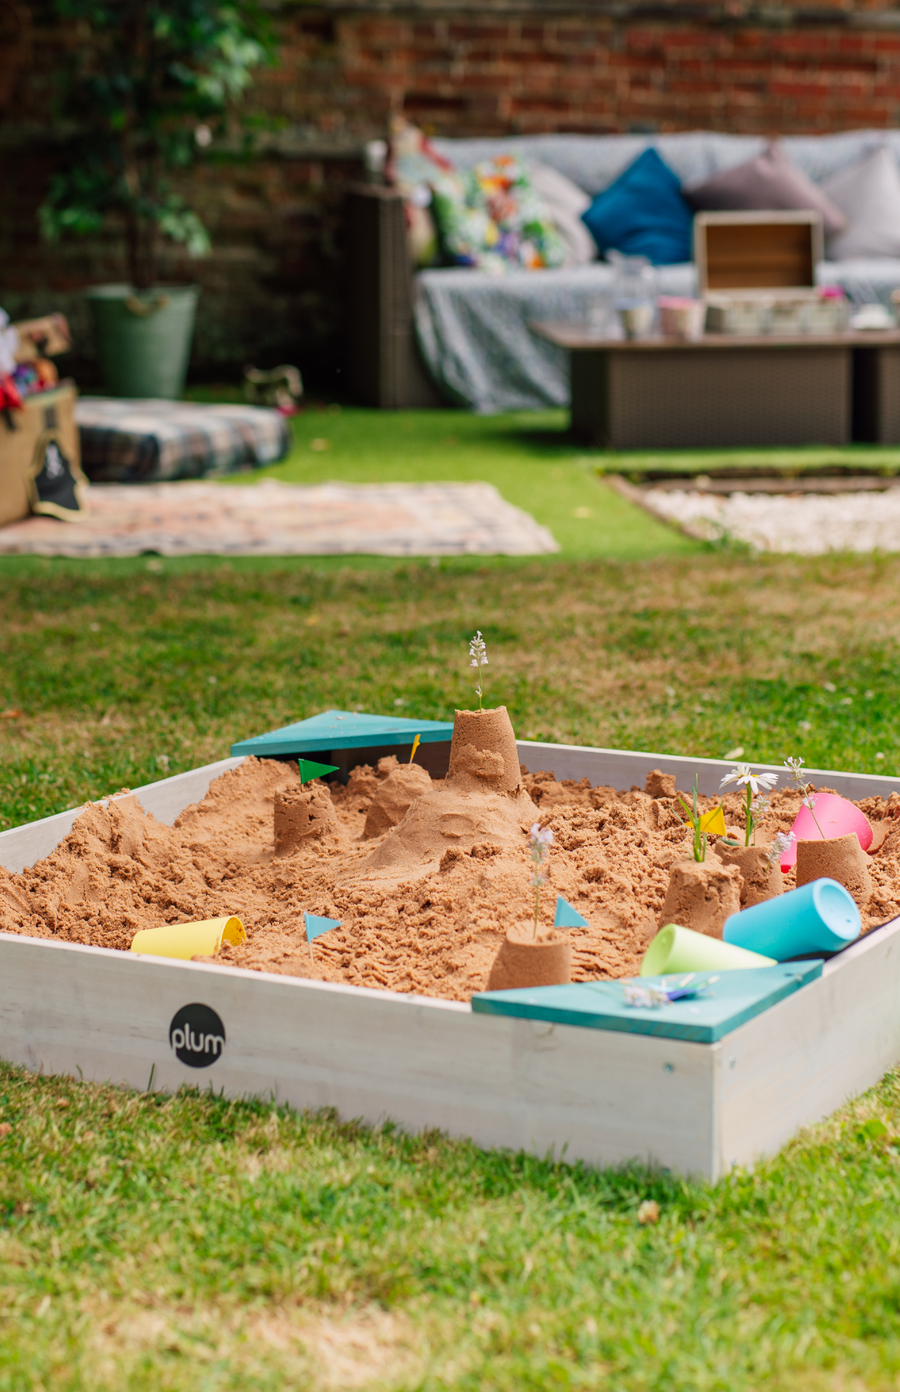 Plum® Junior Wooden Sand Pit - Teal